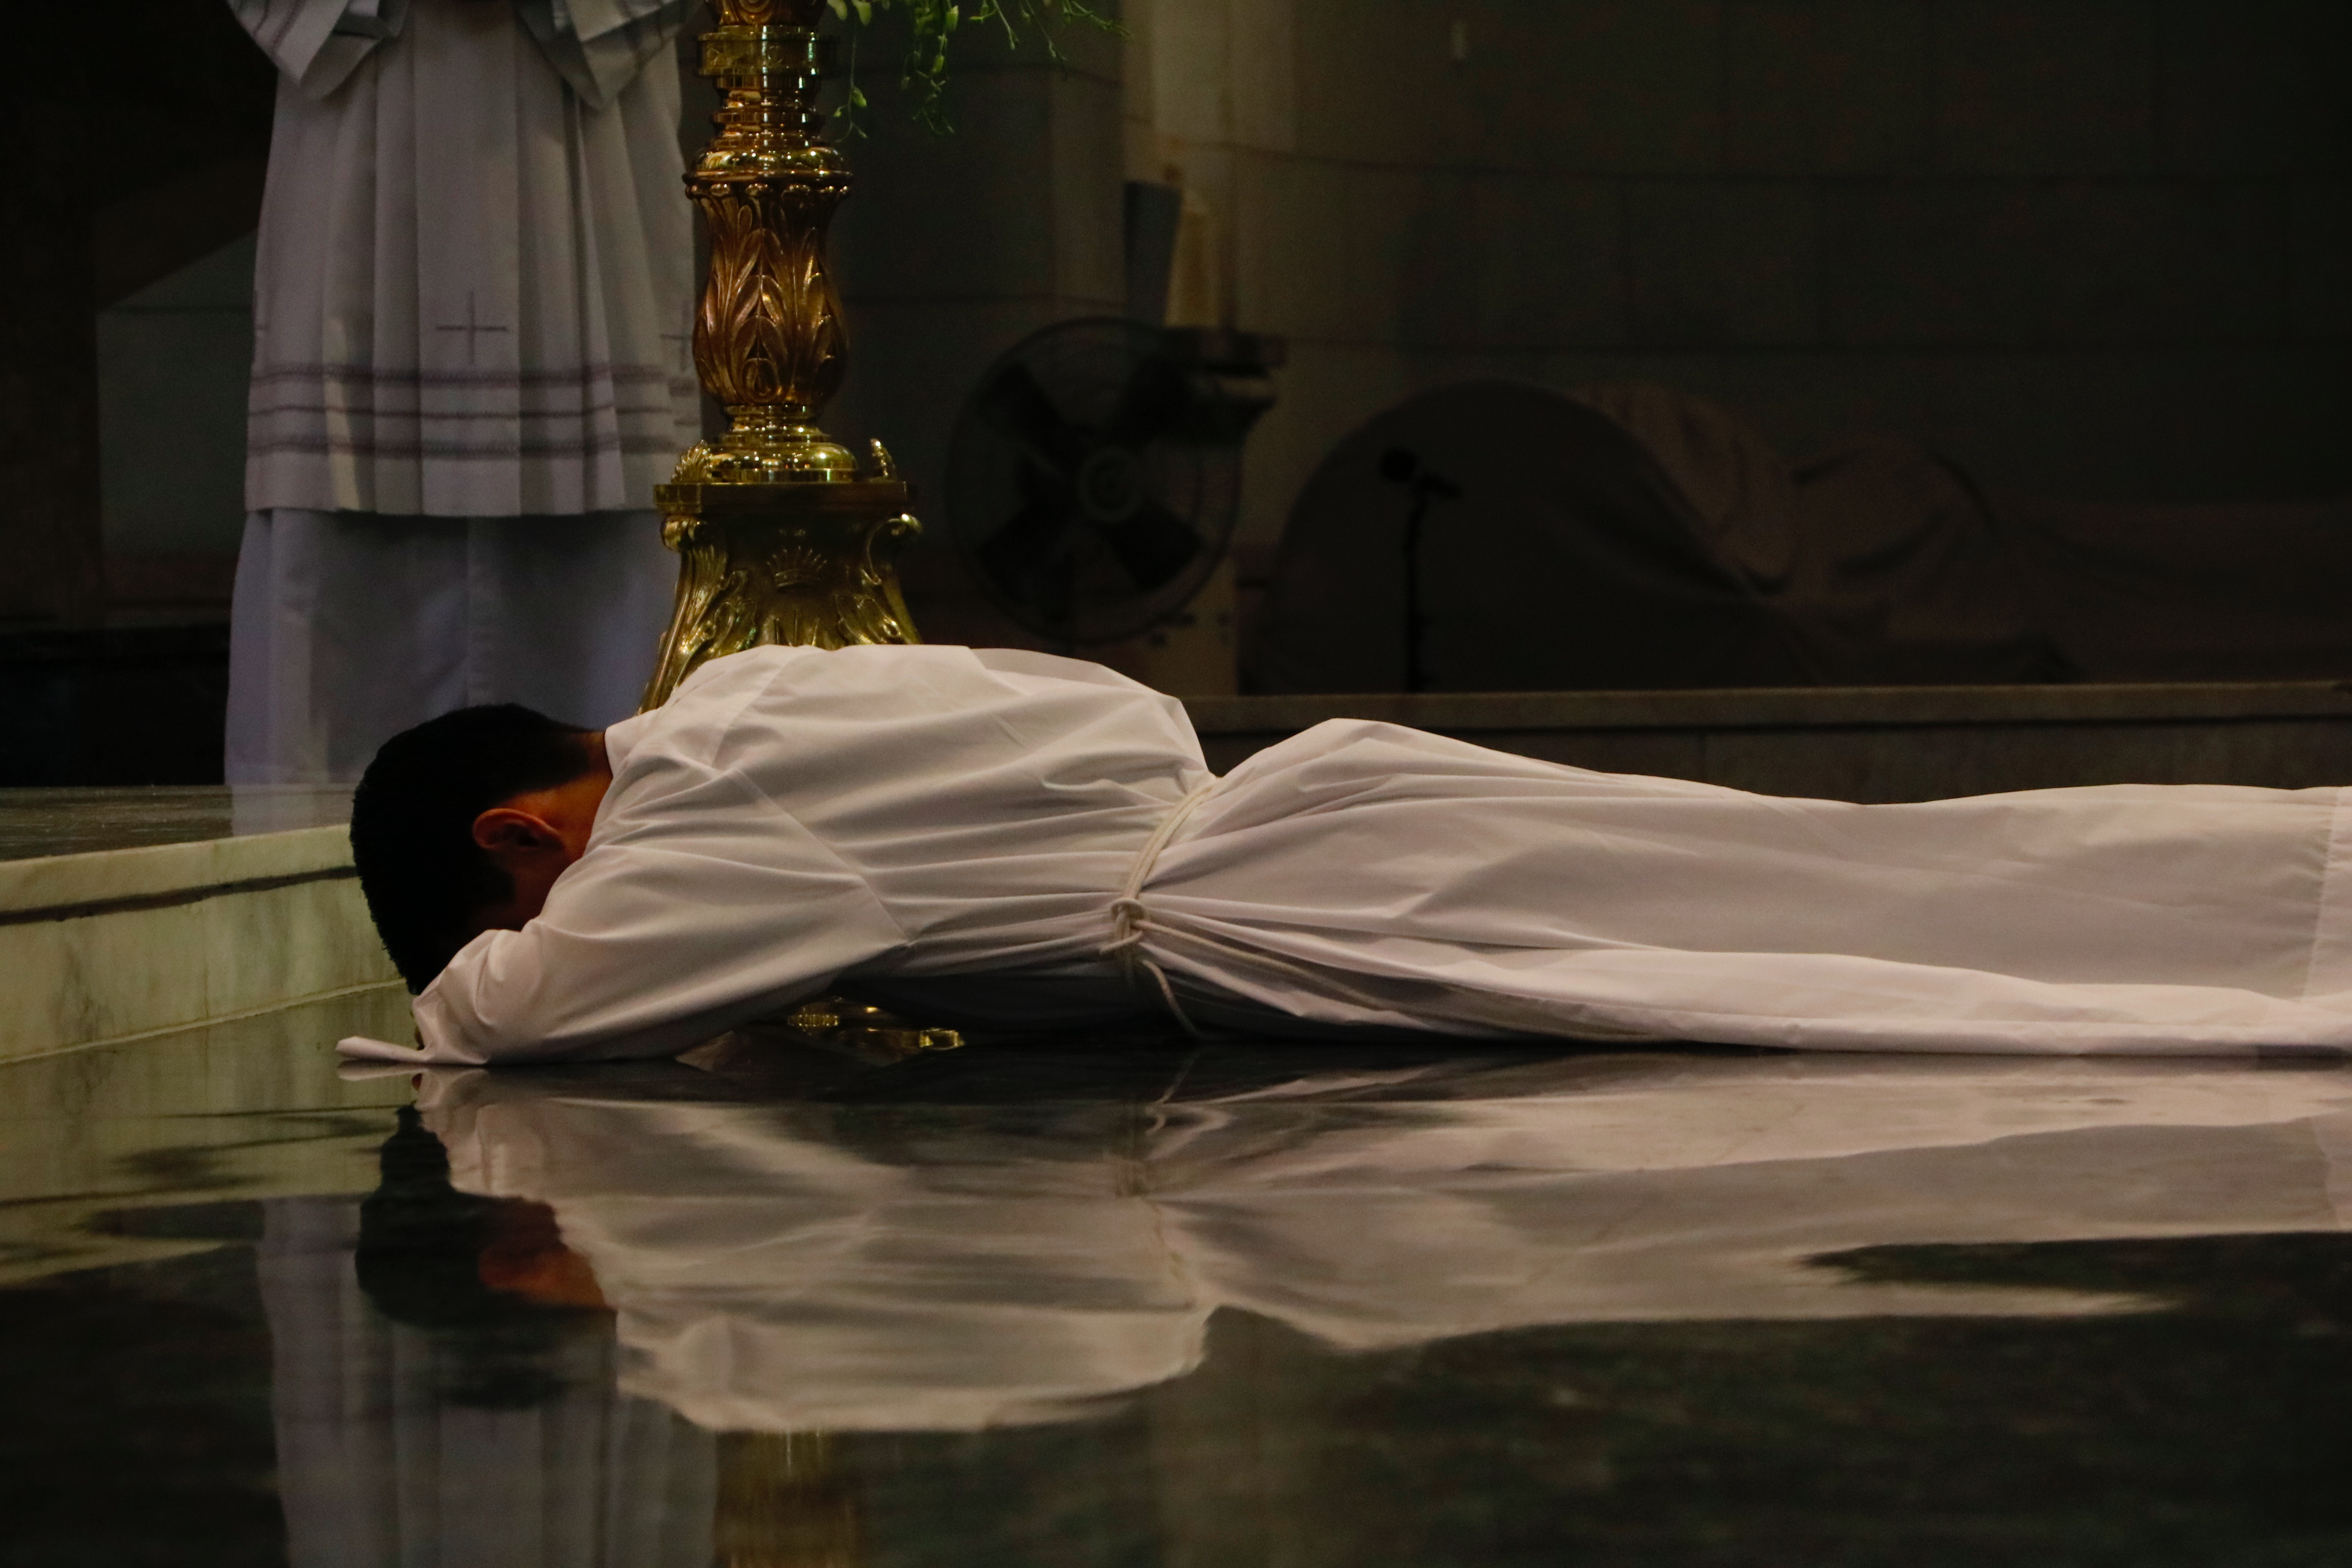 LUIS PROSTRATE